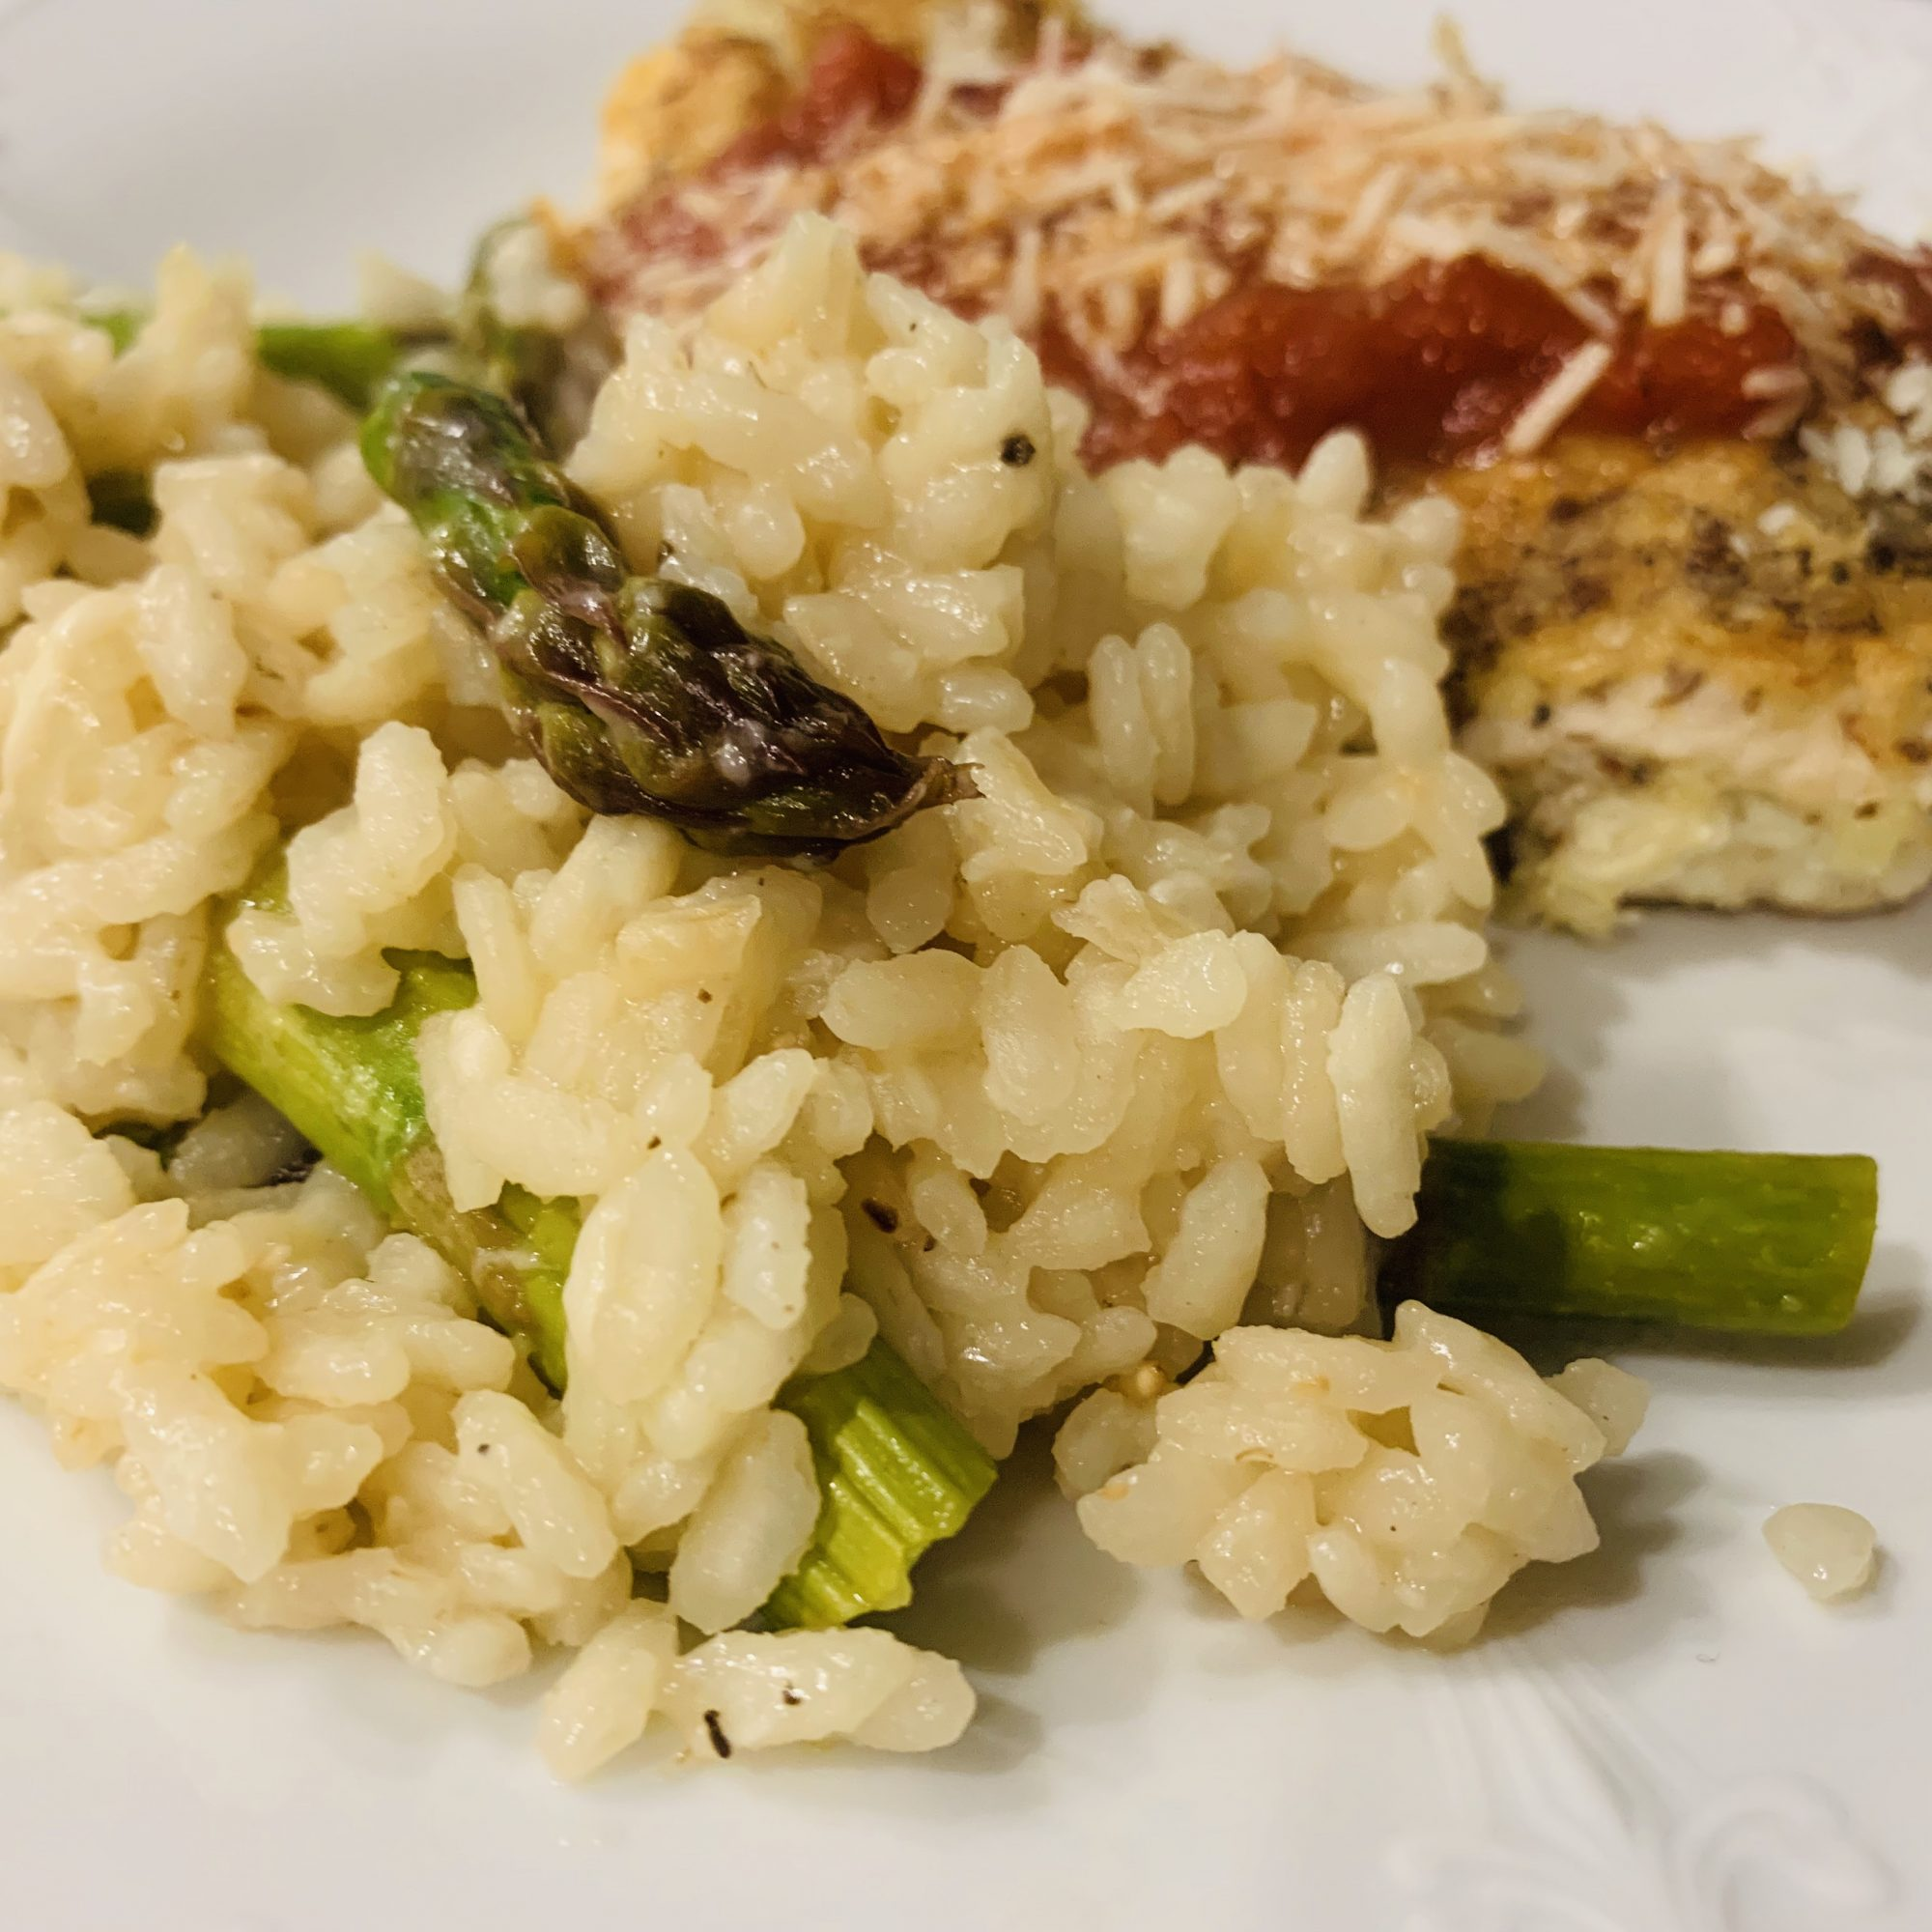 risotto with asparagus on a white plate